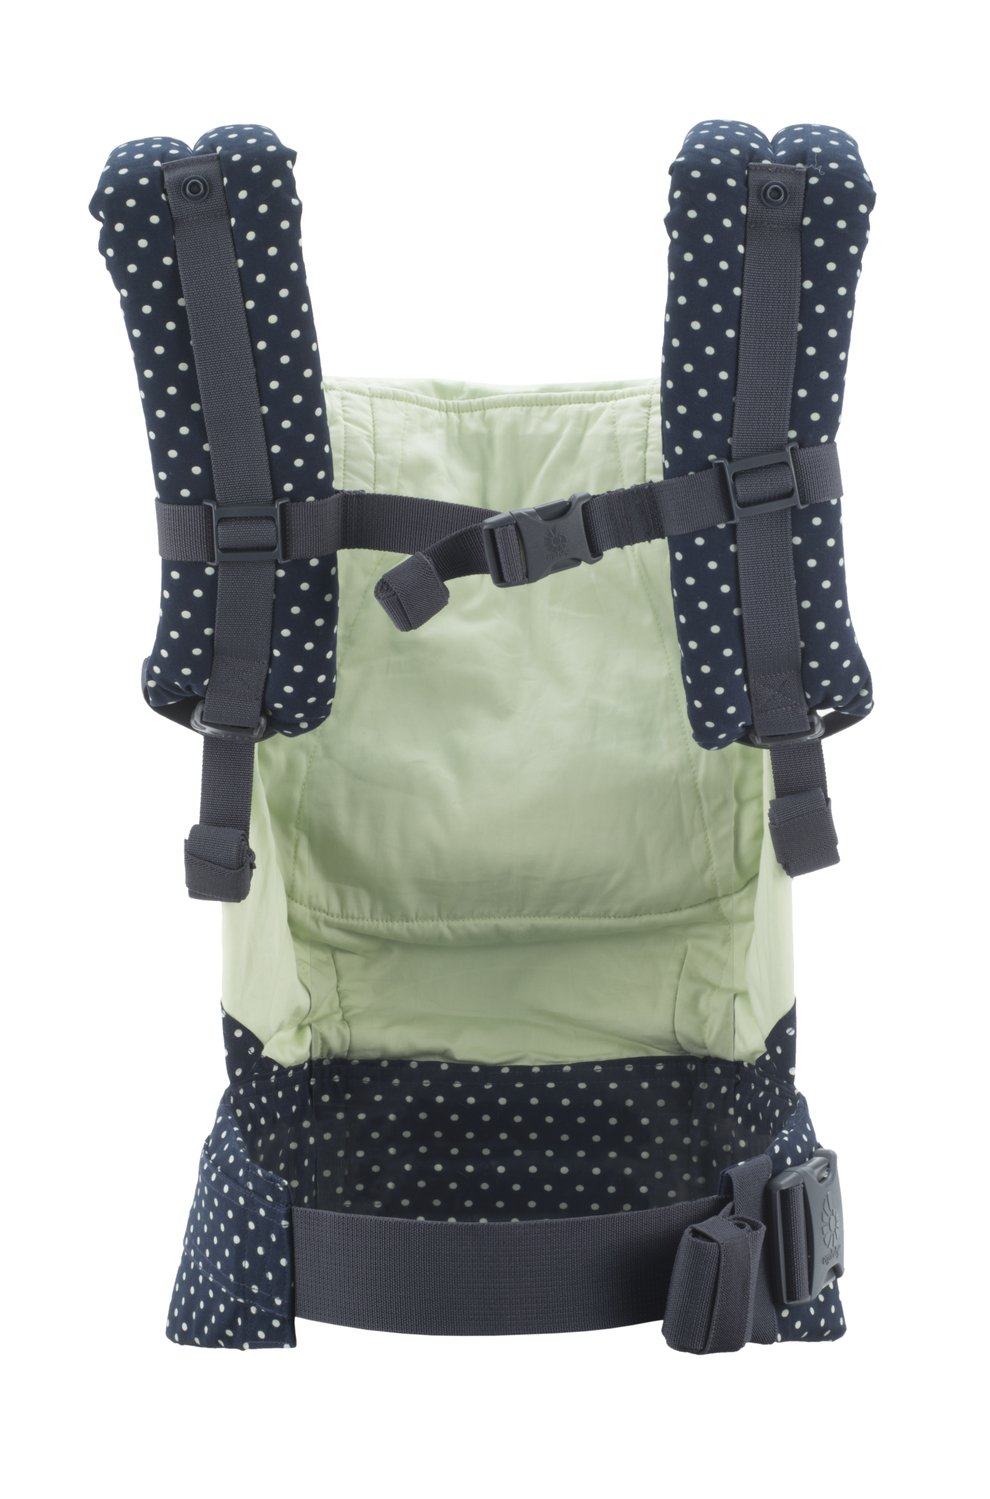 Ergobaby Original Collection Evolutionary Backpack Baby Carrier one size Ergobaby The baby's weight is evenly distributed between the wearer's hips and shoulders. The baby is ergonomically cradled in a natural seated position. It has front, back, and hip carrying positions. 5